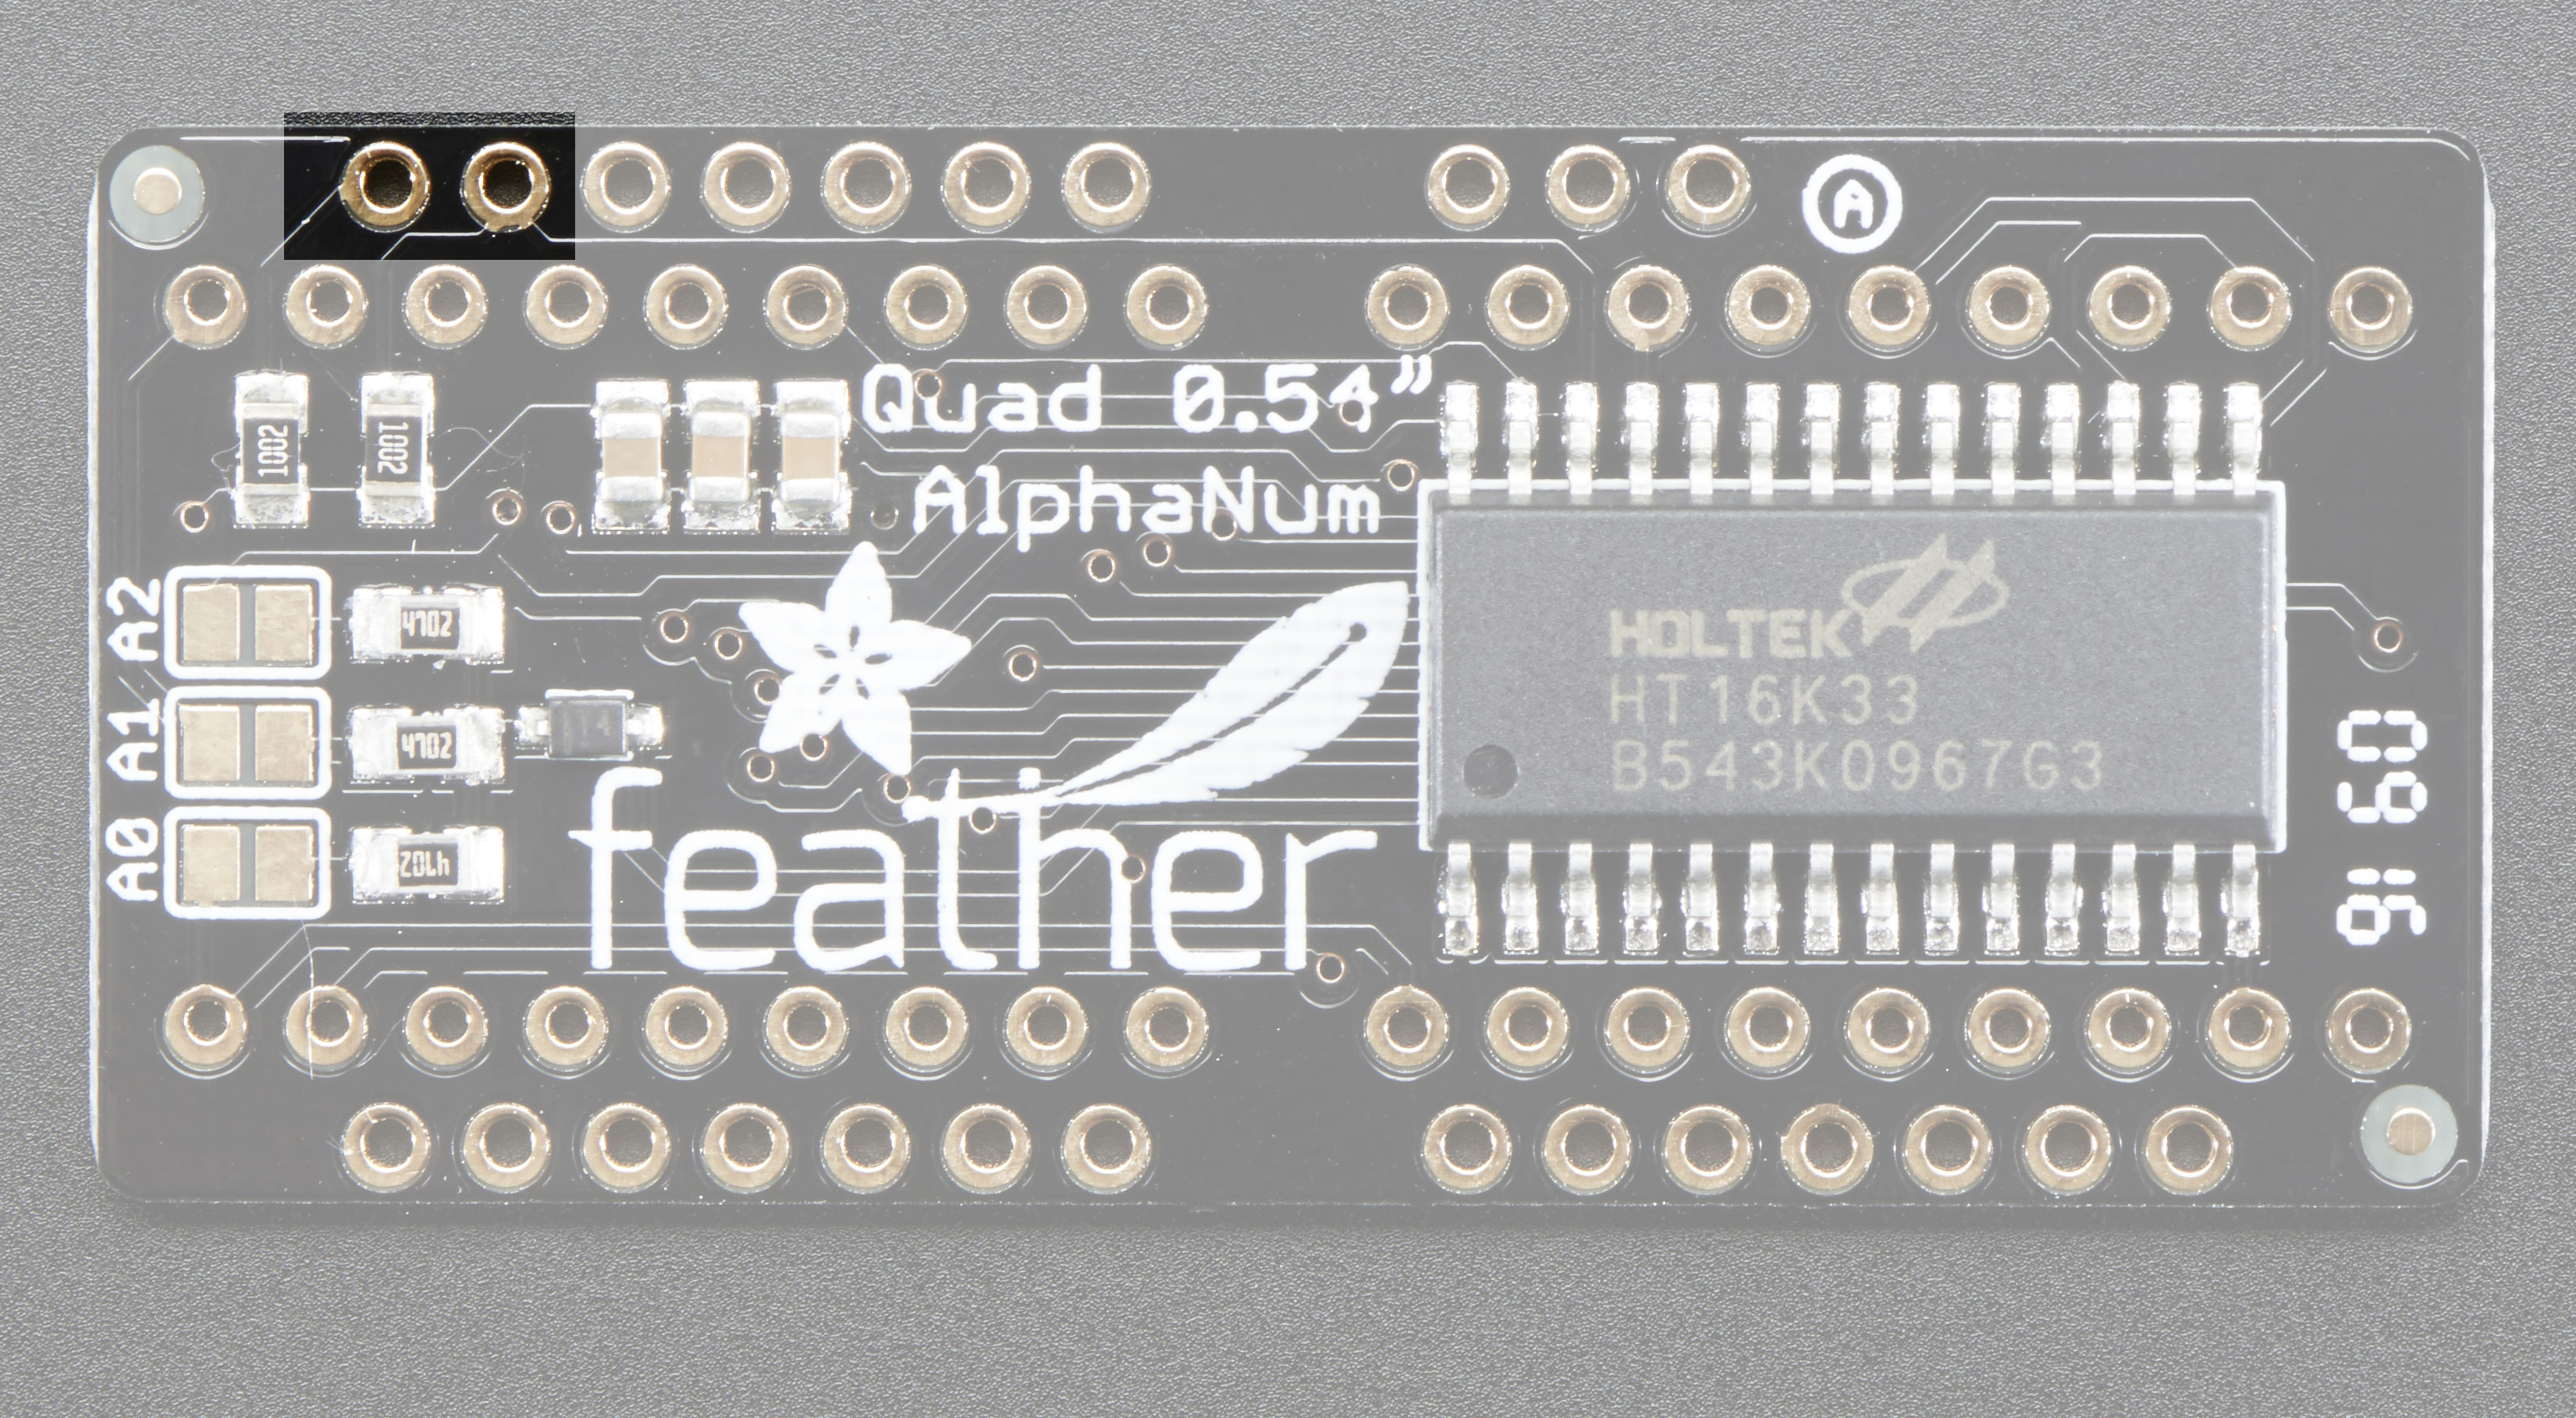 feather_i2cpins.jpg